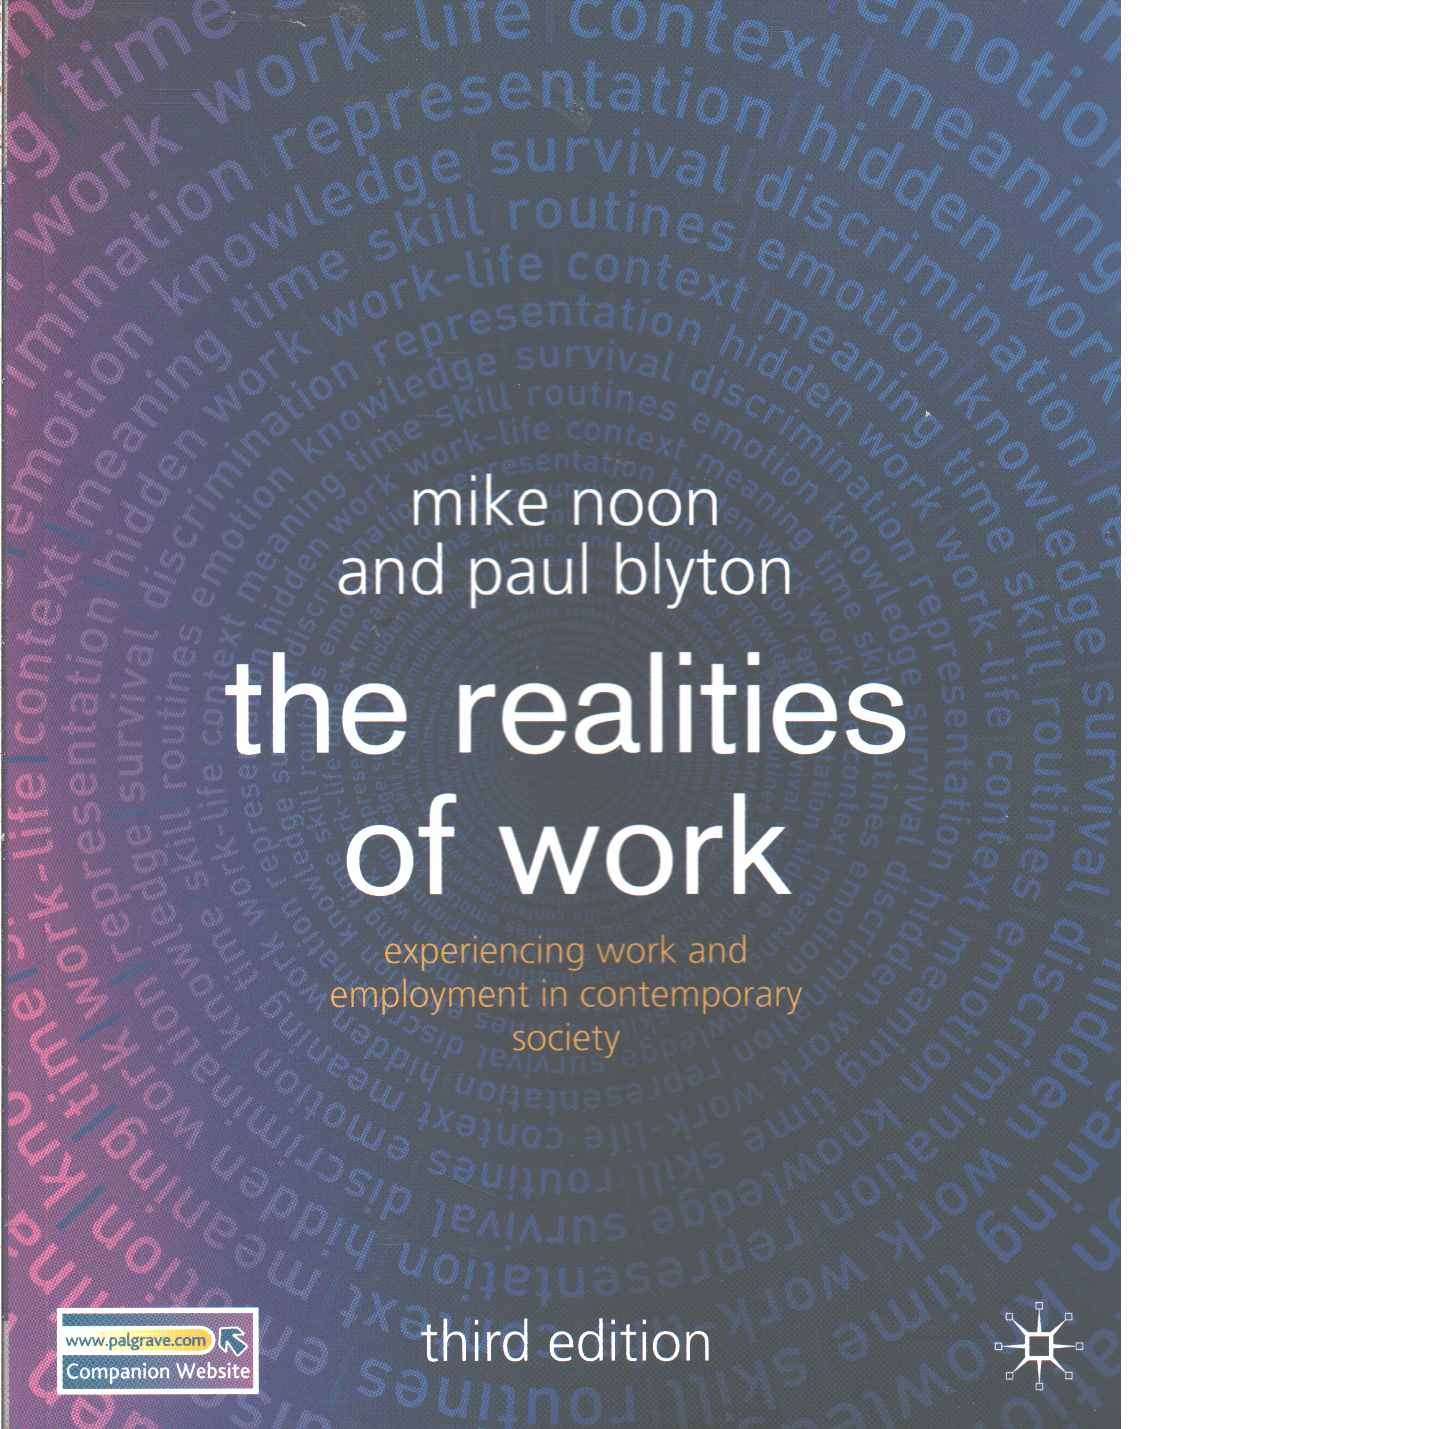 The realities of work : experiencing work and employment in contemporary society  - Noon, Mike  and Blyton, Paul